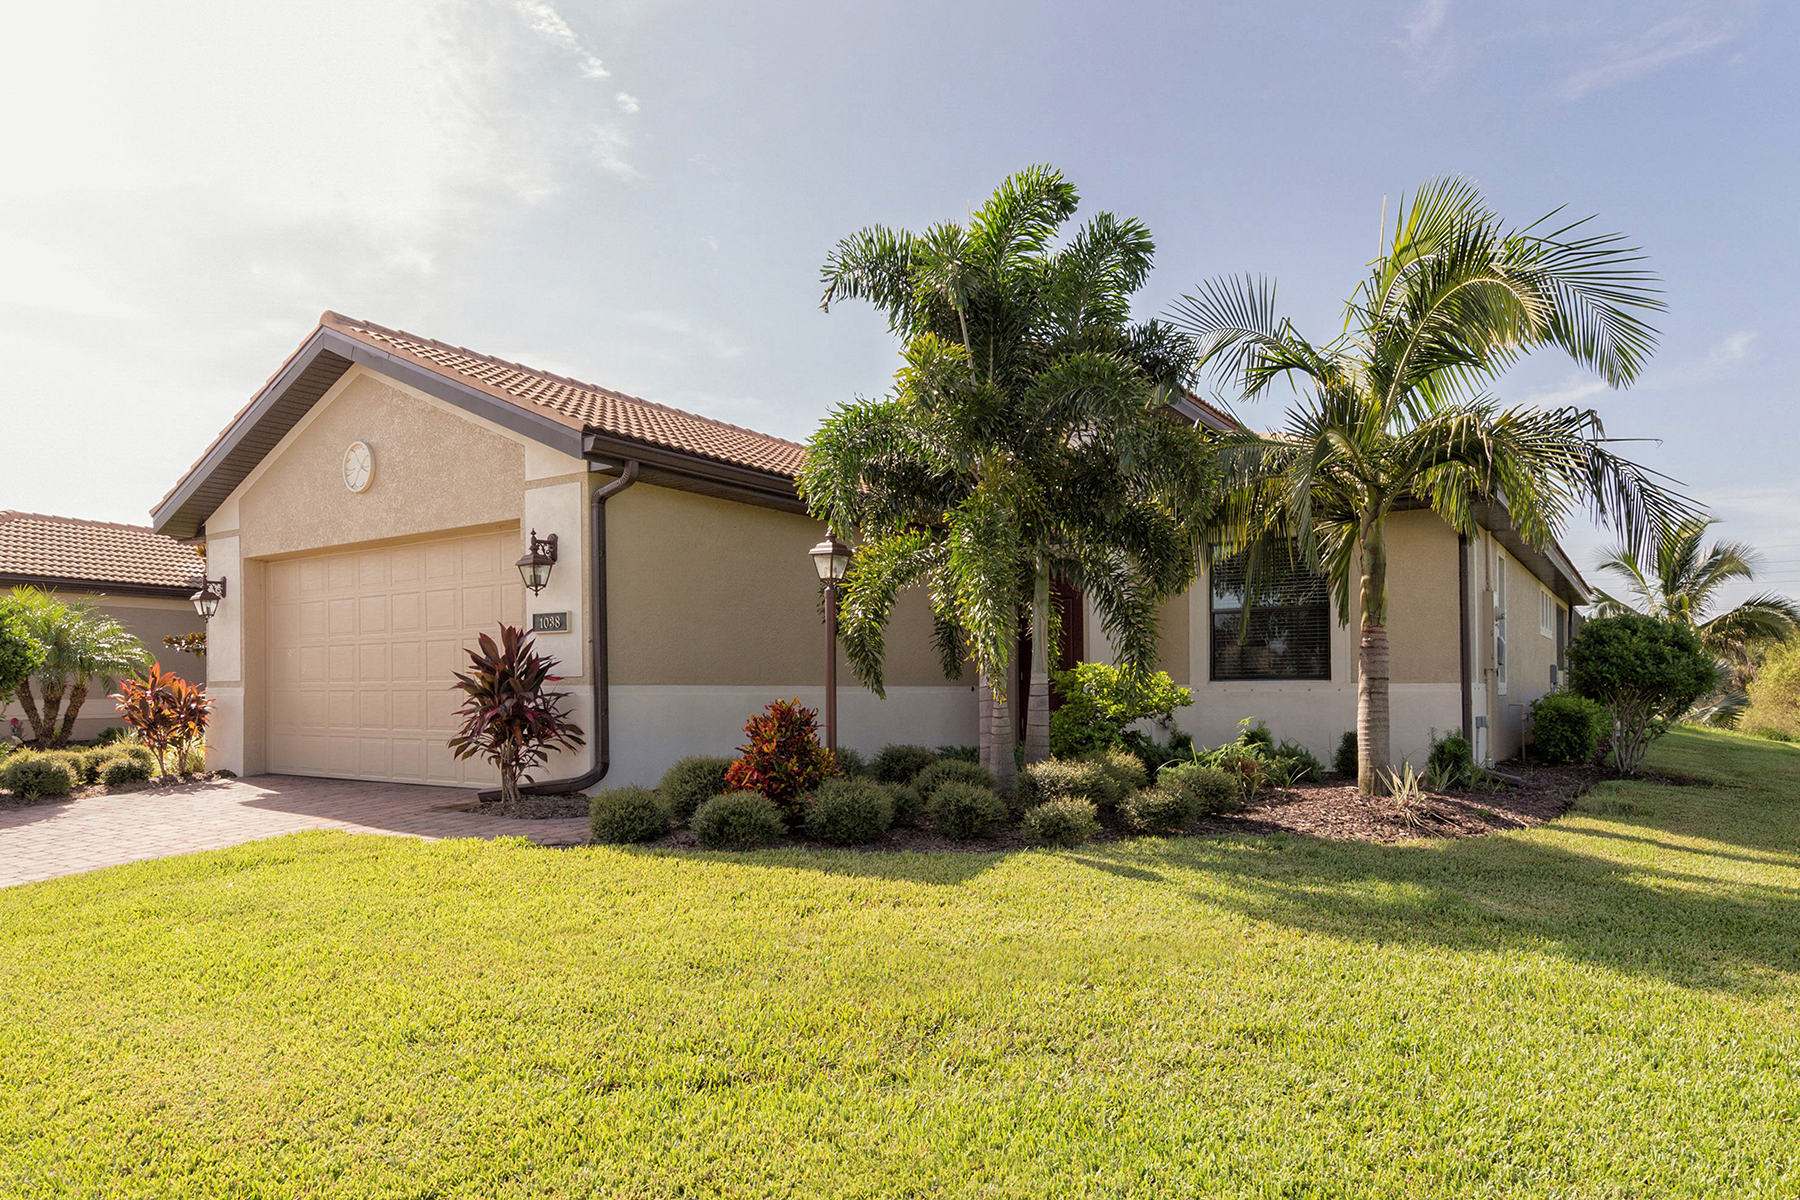 Single Family Home for Sale at WILLOW CHASE 1038 Ancora Blvd North Venice, Florida, 34275 United States